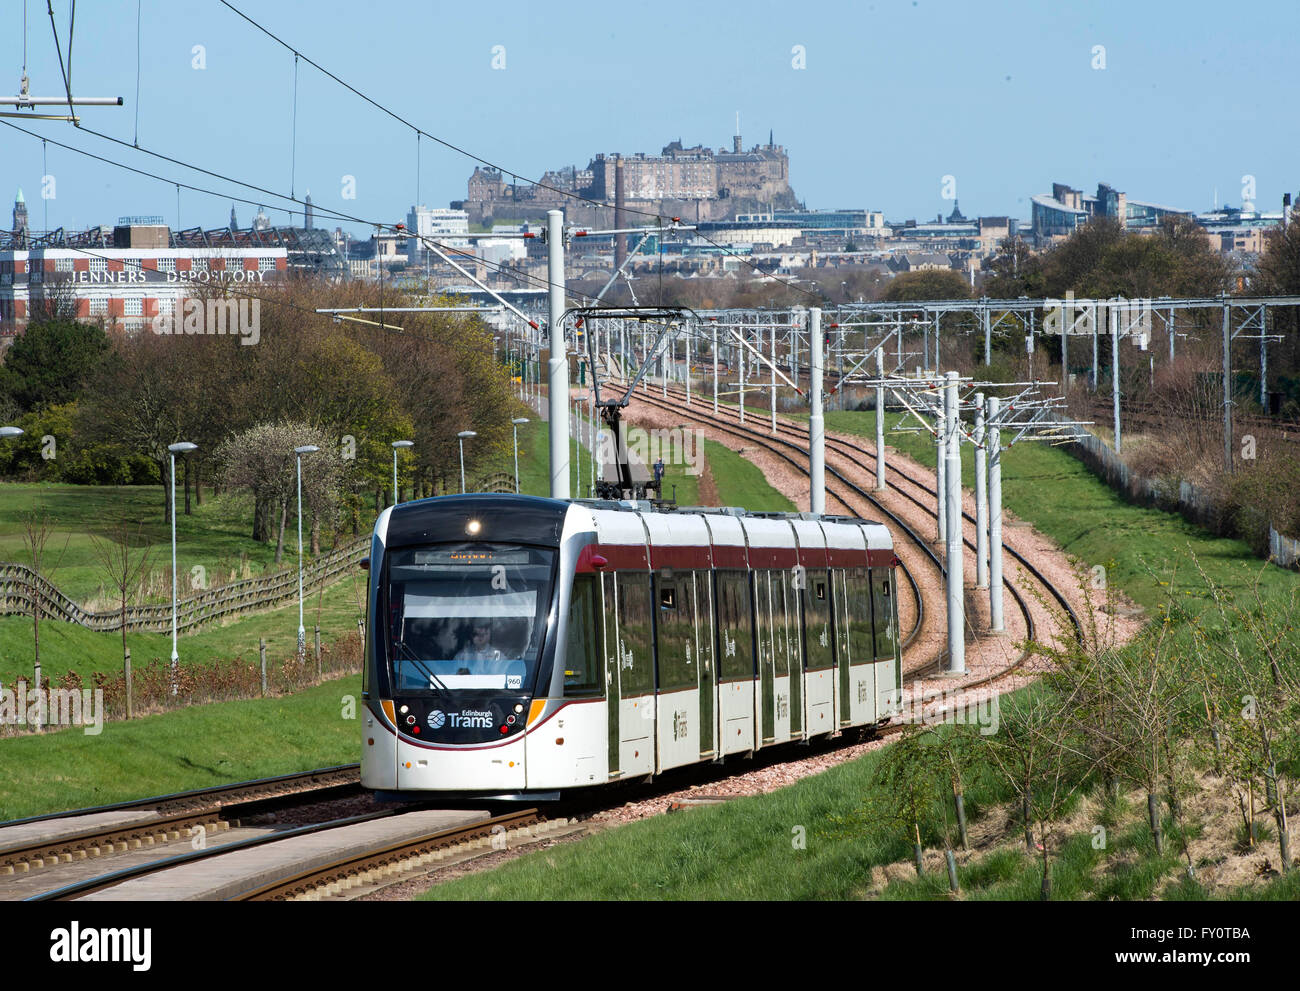 Edinburgh tram on route from the city centre to the airport with Edinburgh castle in the distance. Stock Photo